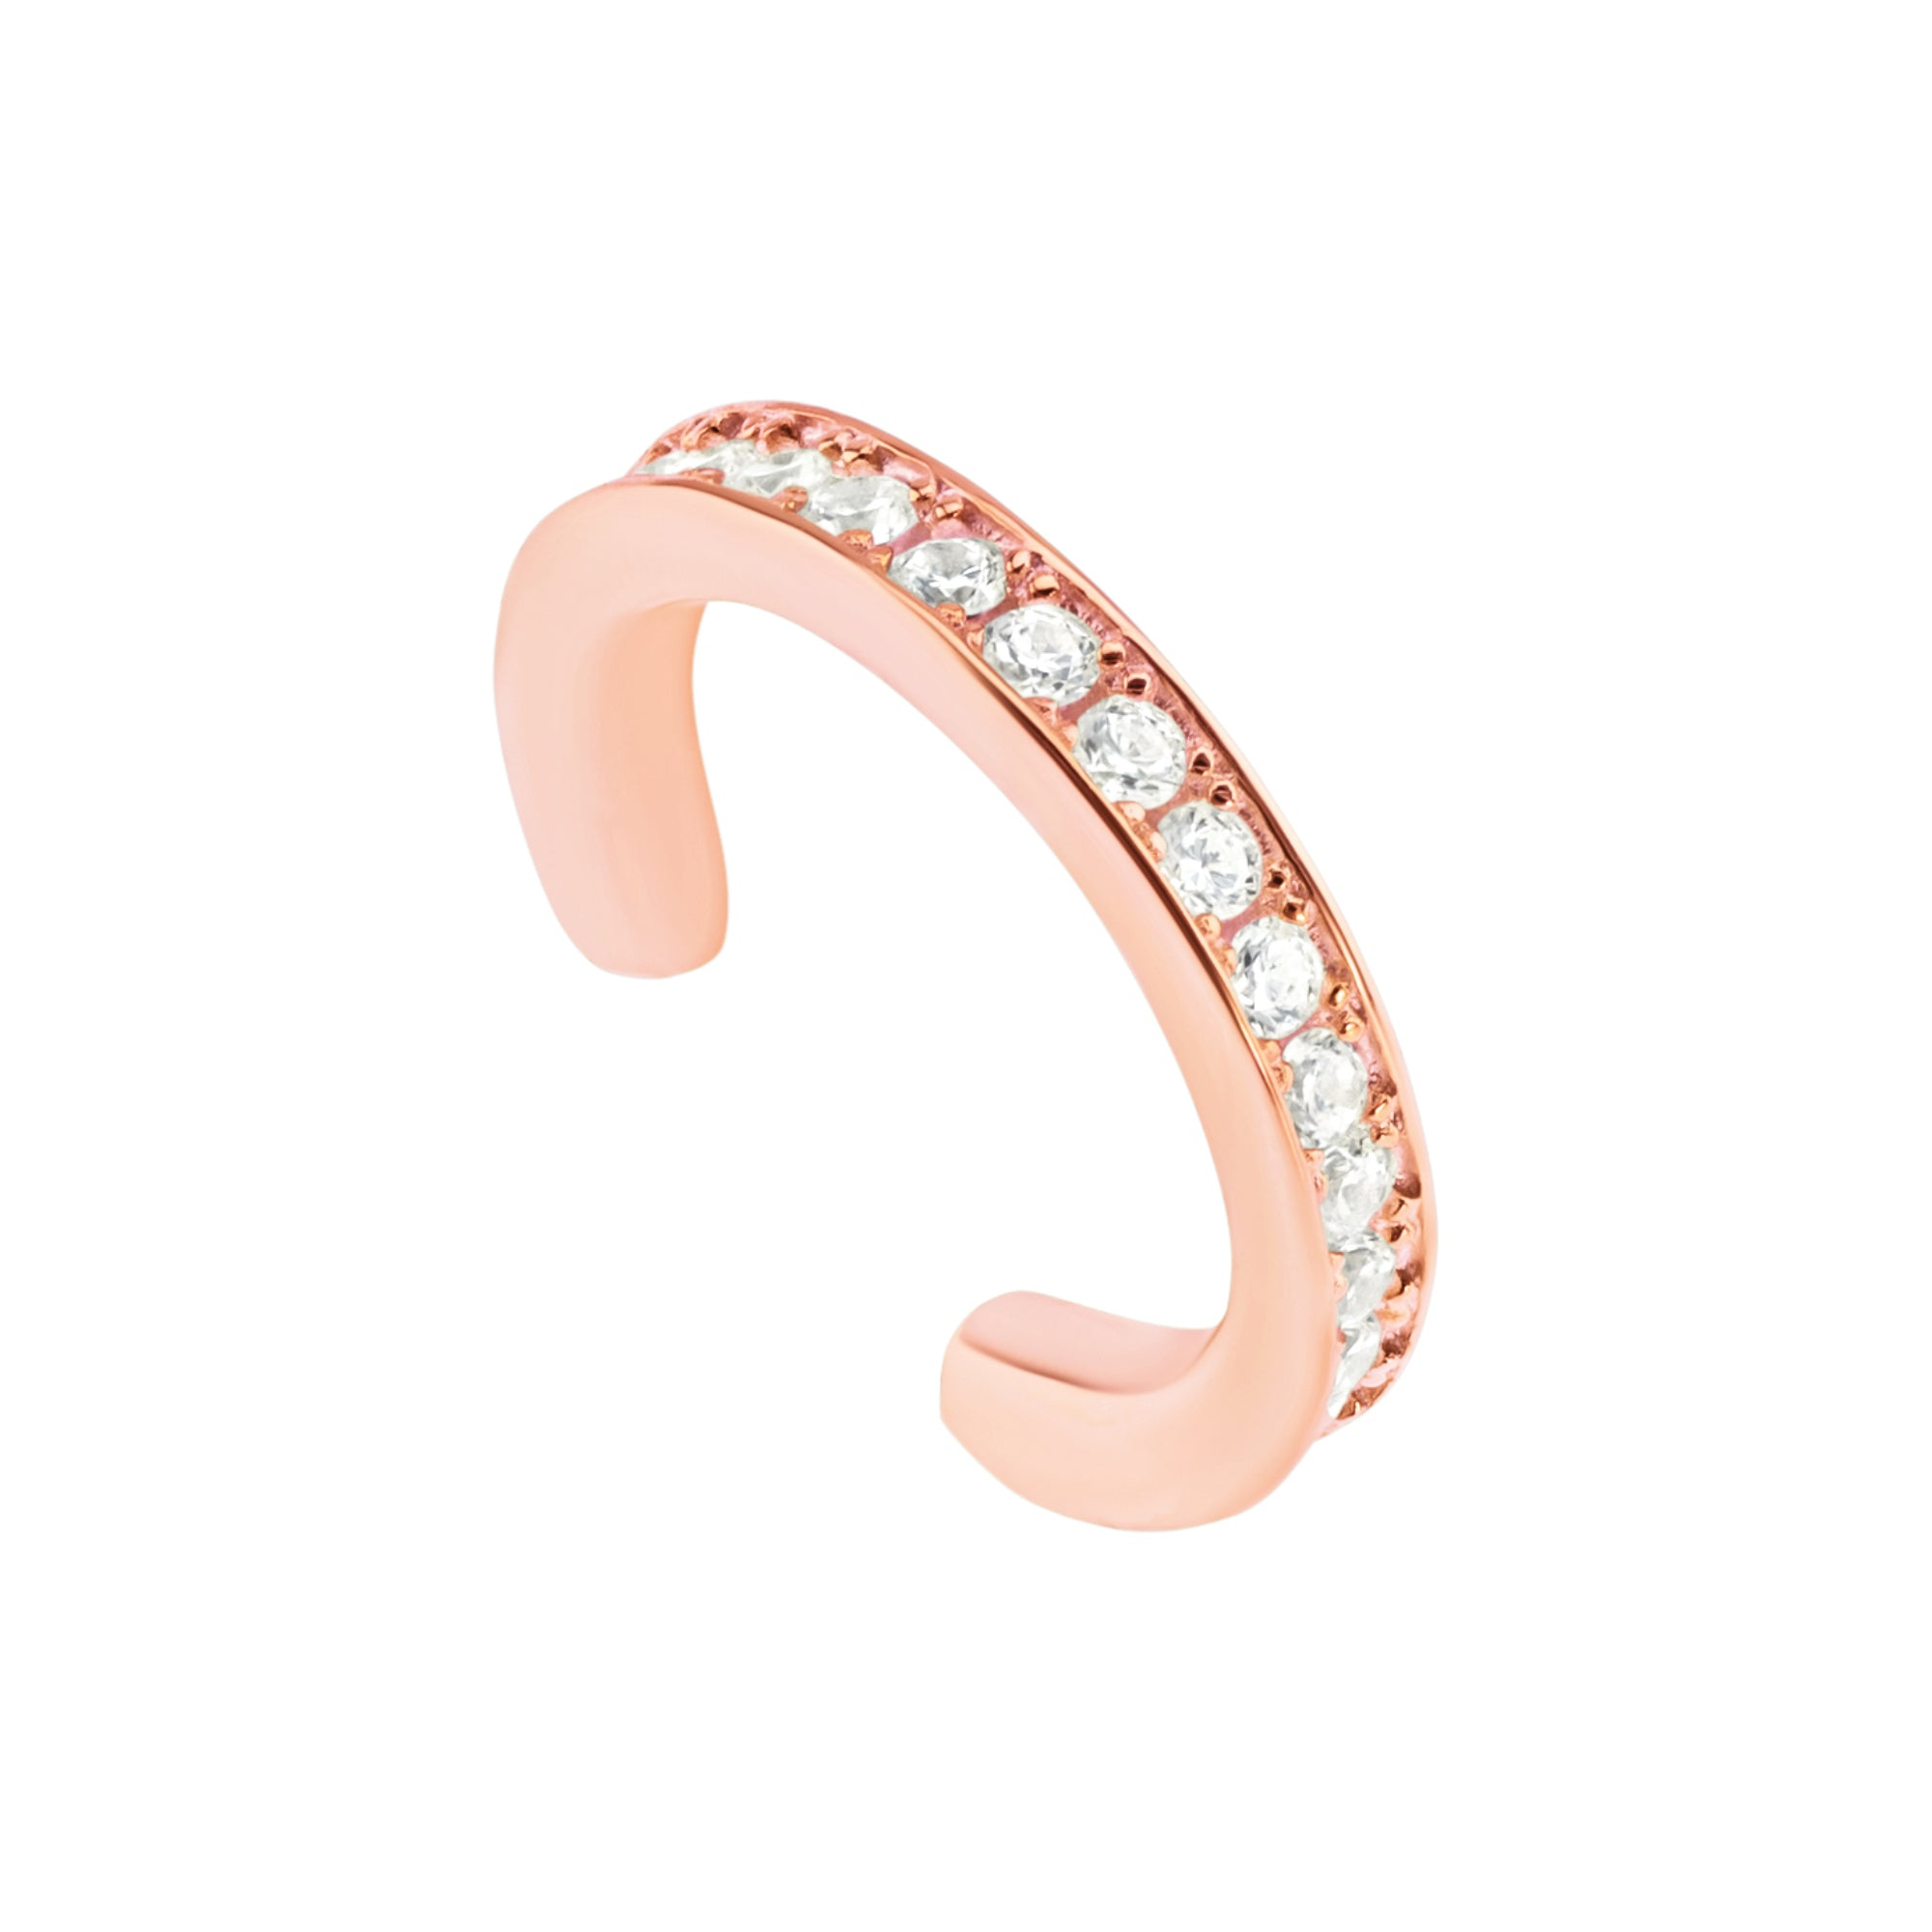 Pave Ear Cuff - Rose Gold - Voare Jewelry